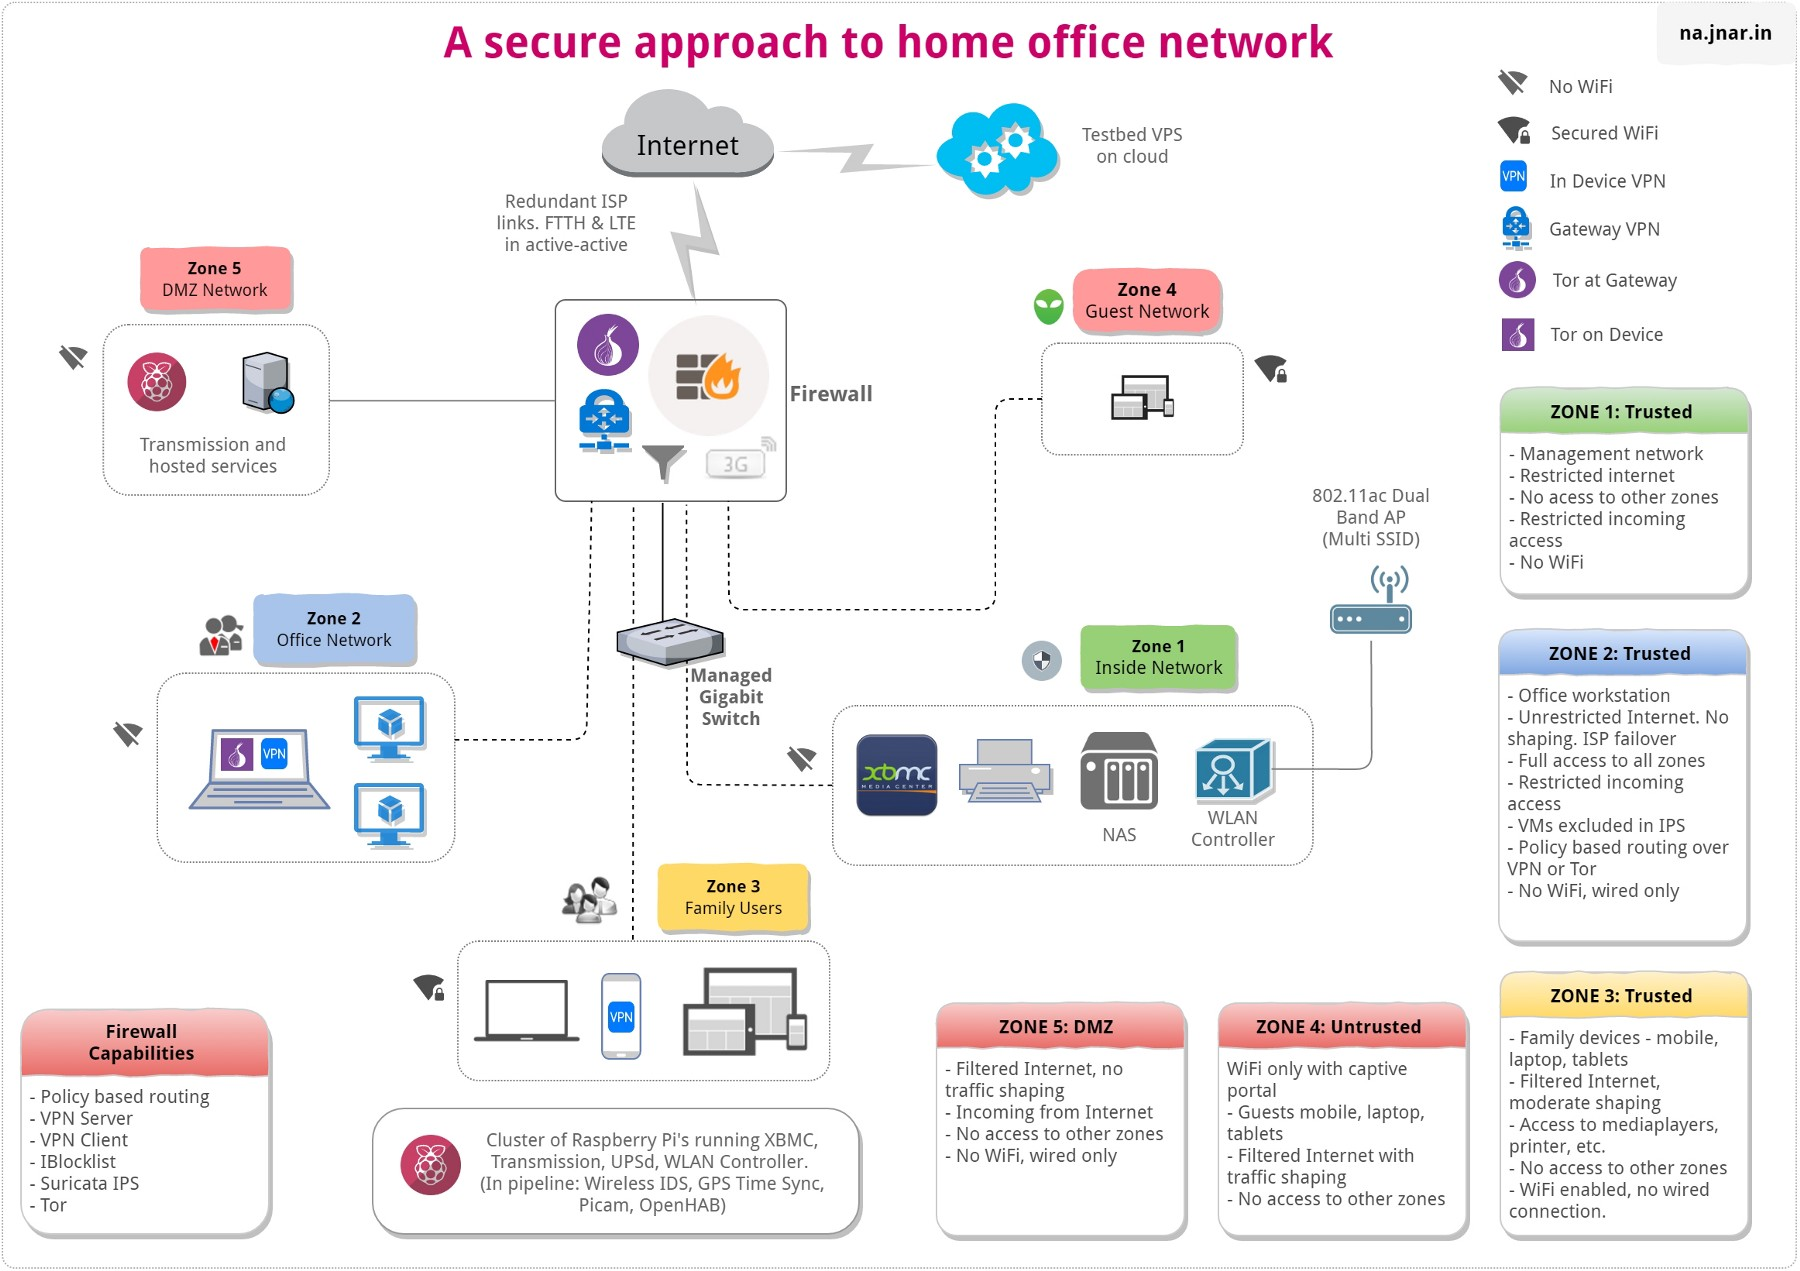 hight resolution of components of secure home office network part ii u2013 outscribethe diagram in part